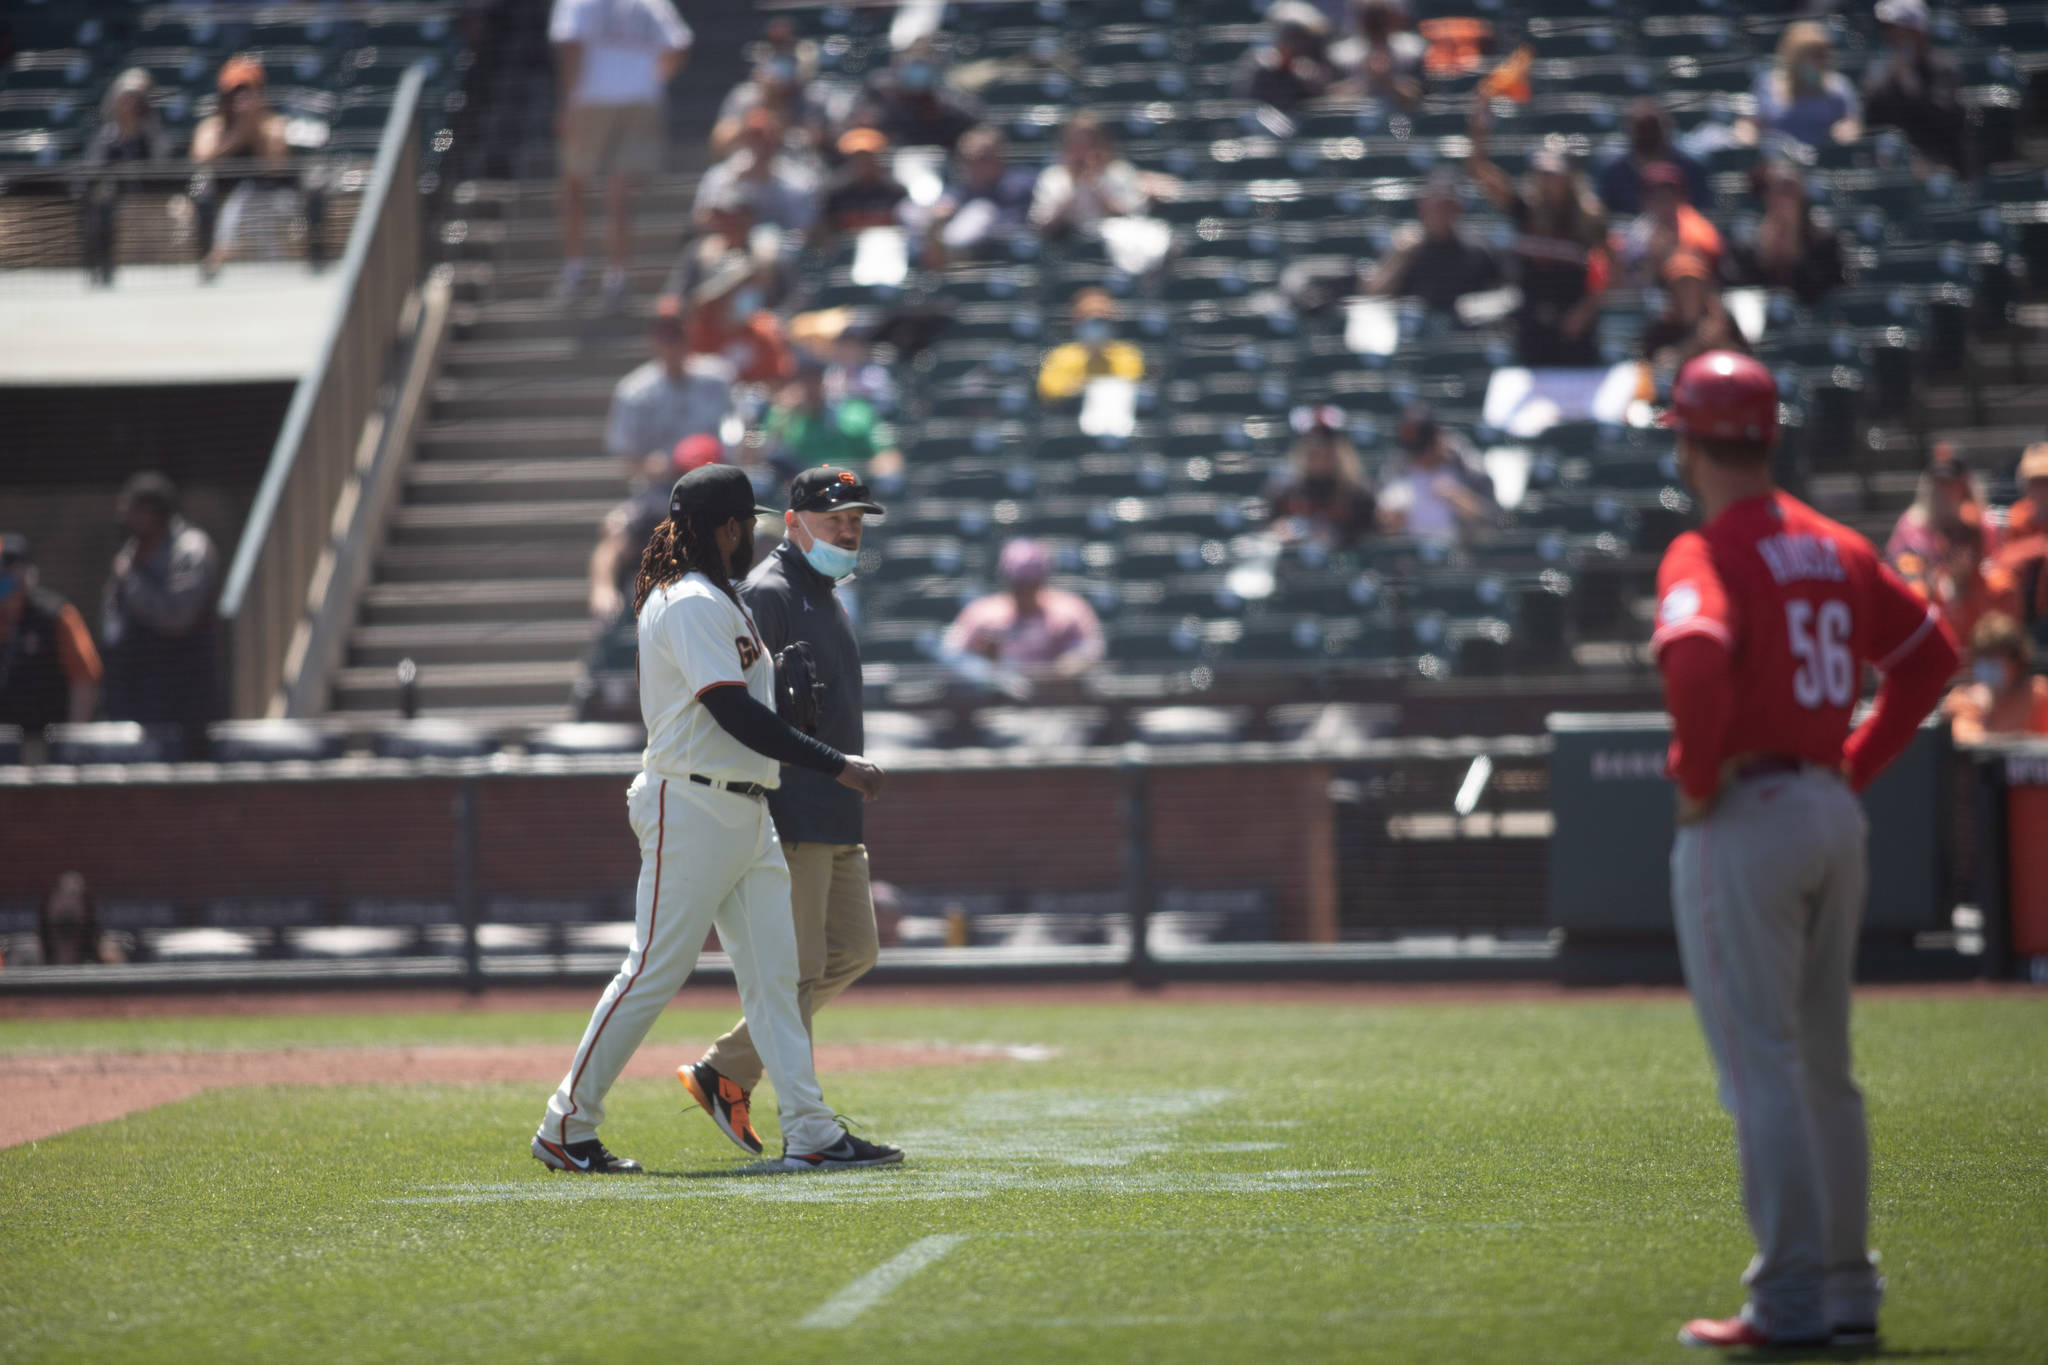 Cueto was relieved at the sixth inning by Giants pitcher Caleb Bargar due to a latissimus dorsi injury. (Sebastian Miño-Bucheli / Special to the S.F. Examiner)